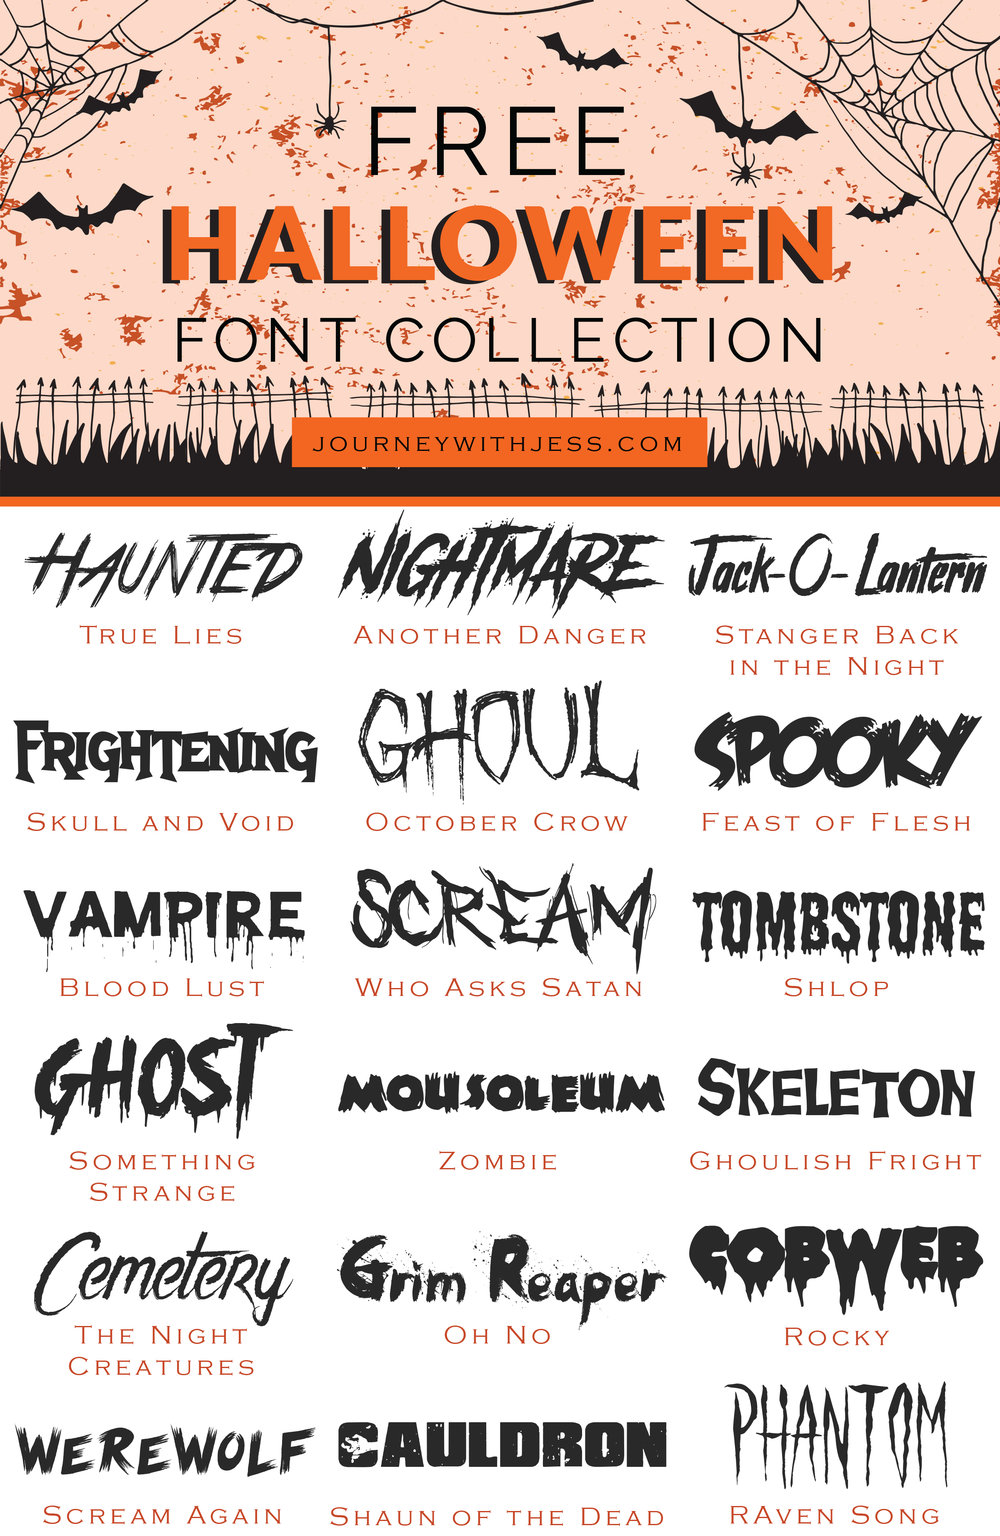 HalloweenFontCollection-post